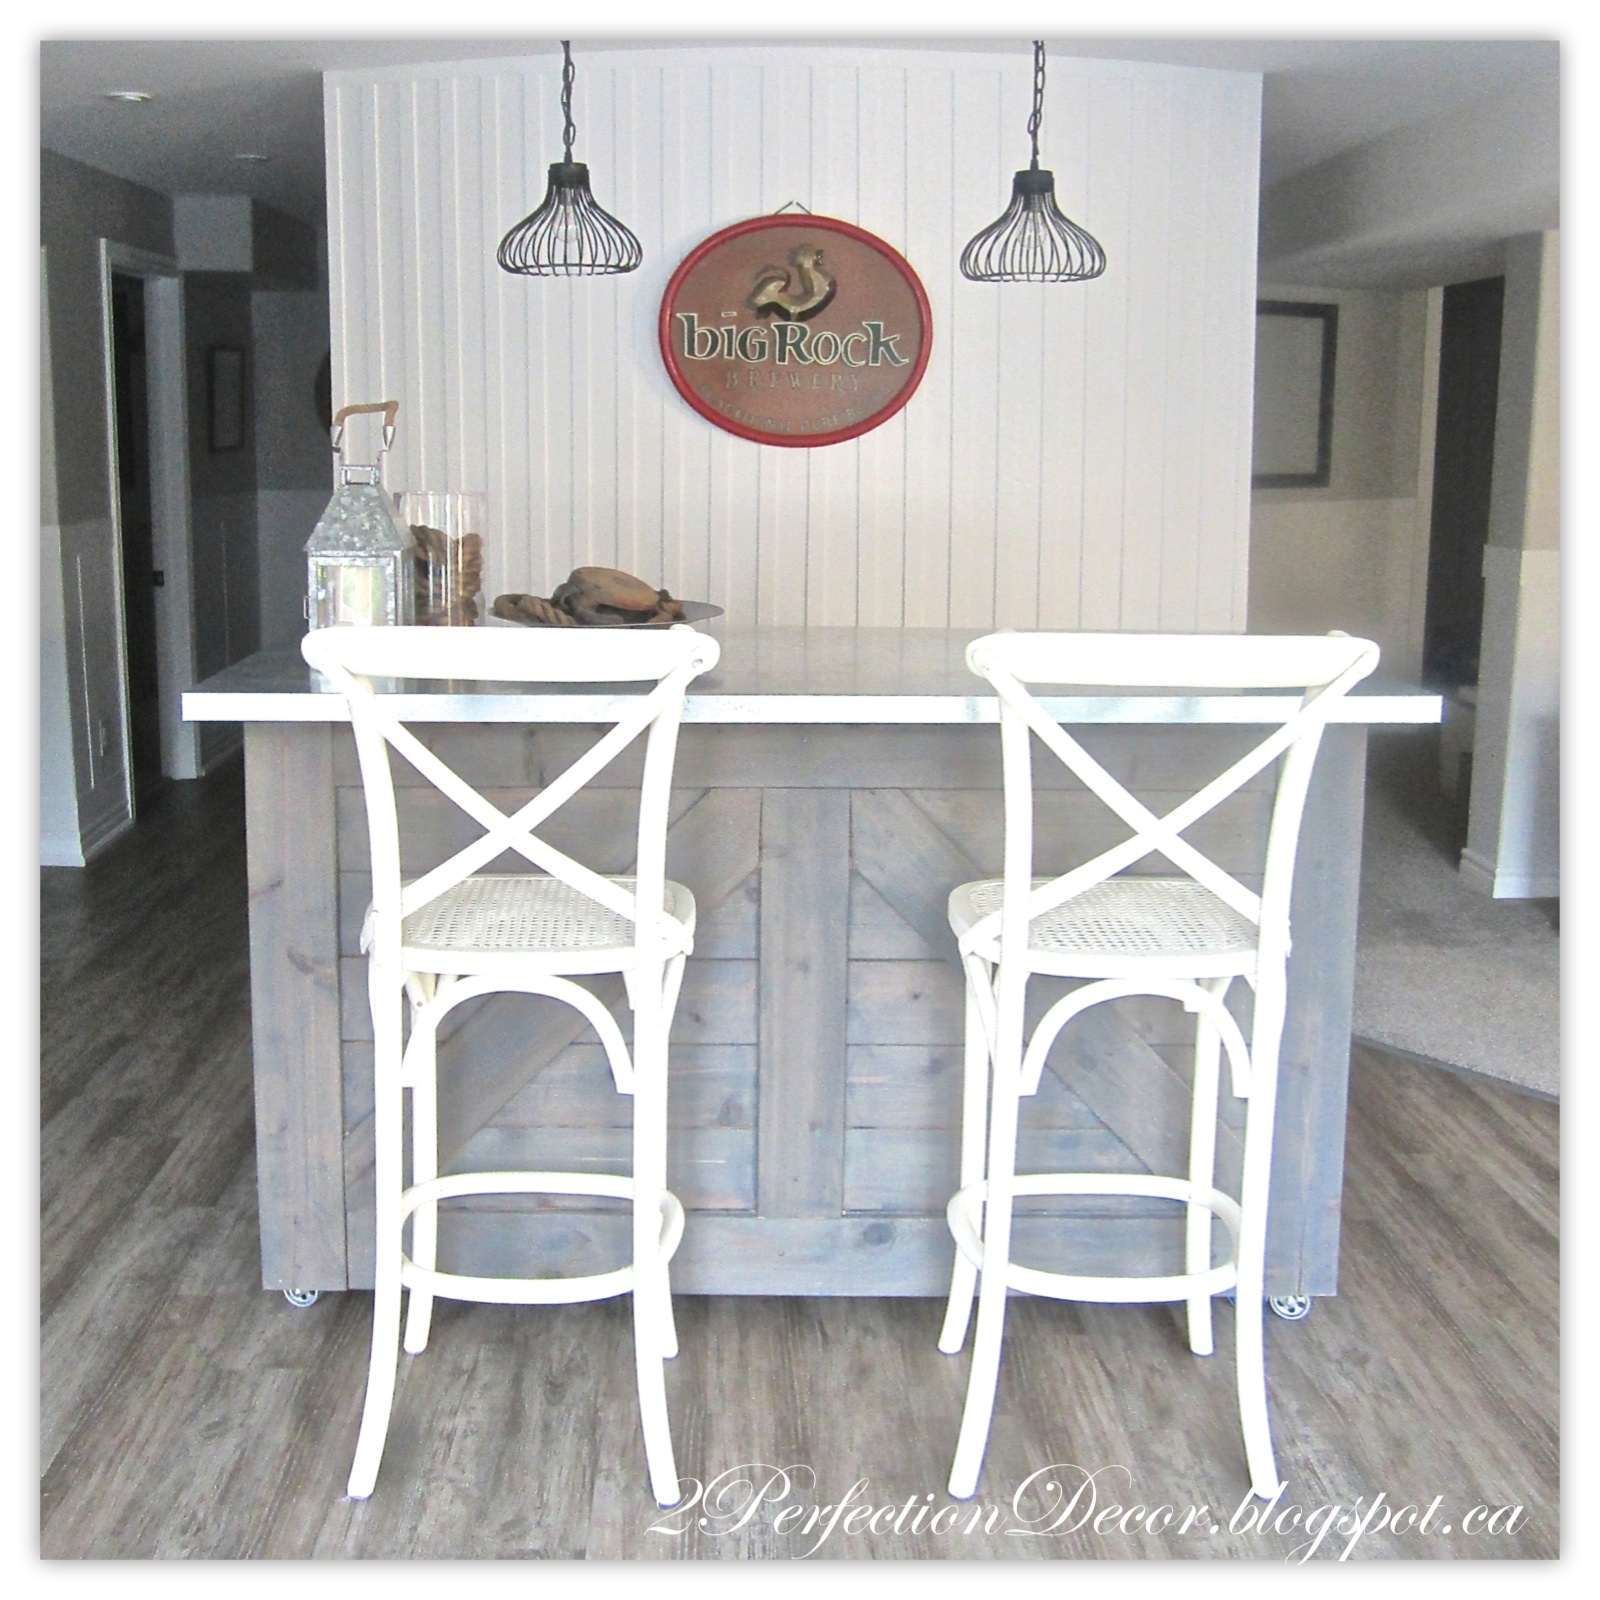 Stunning Rustic Bar with Galvanized Counter Top by Perfection Decor Blog featured on Reodelaholic